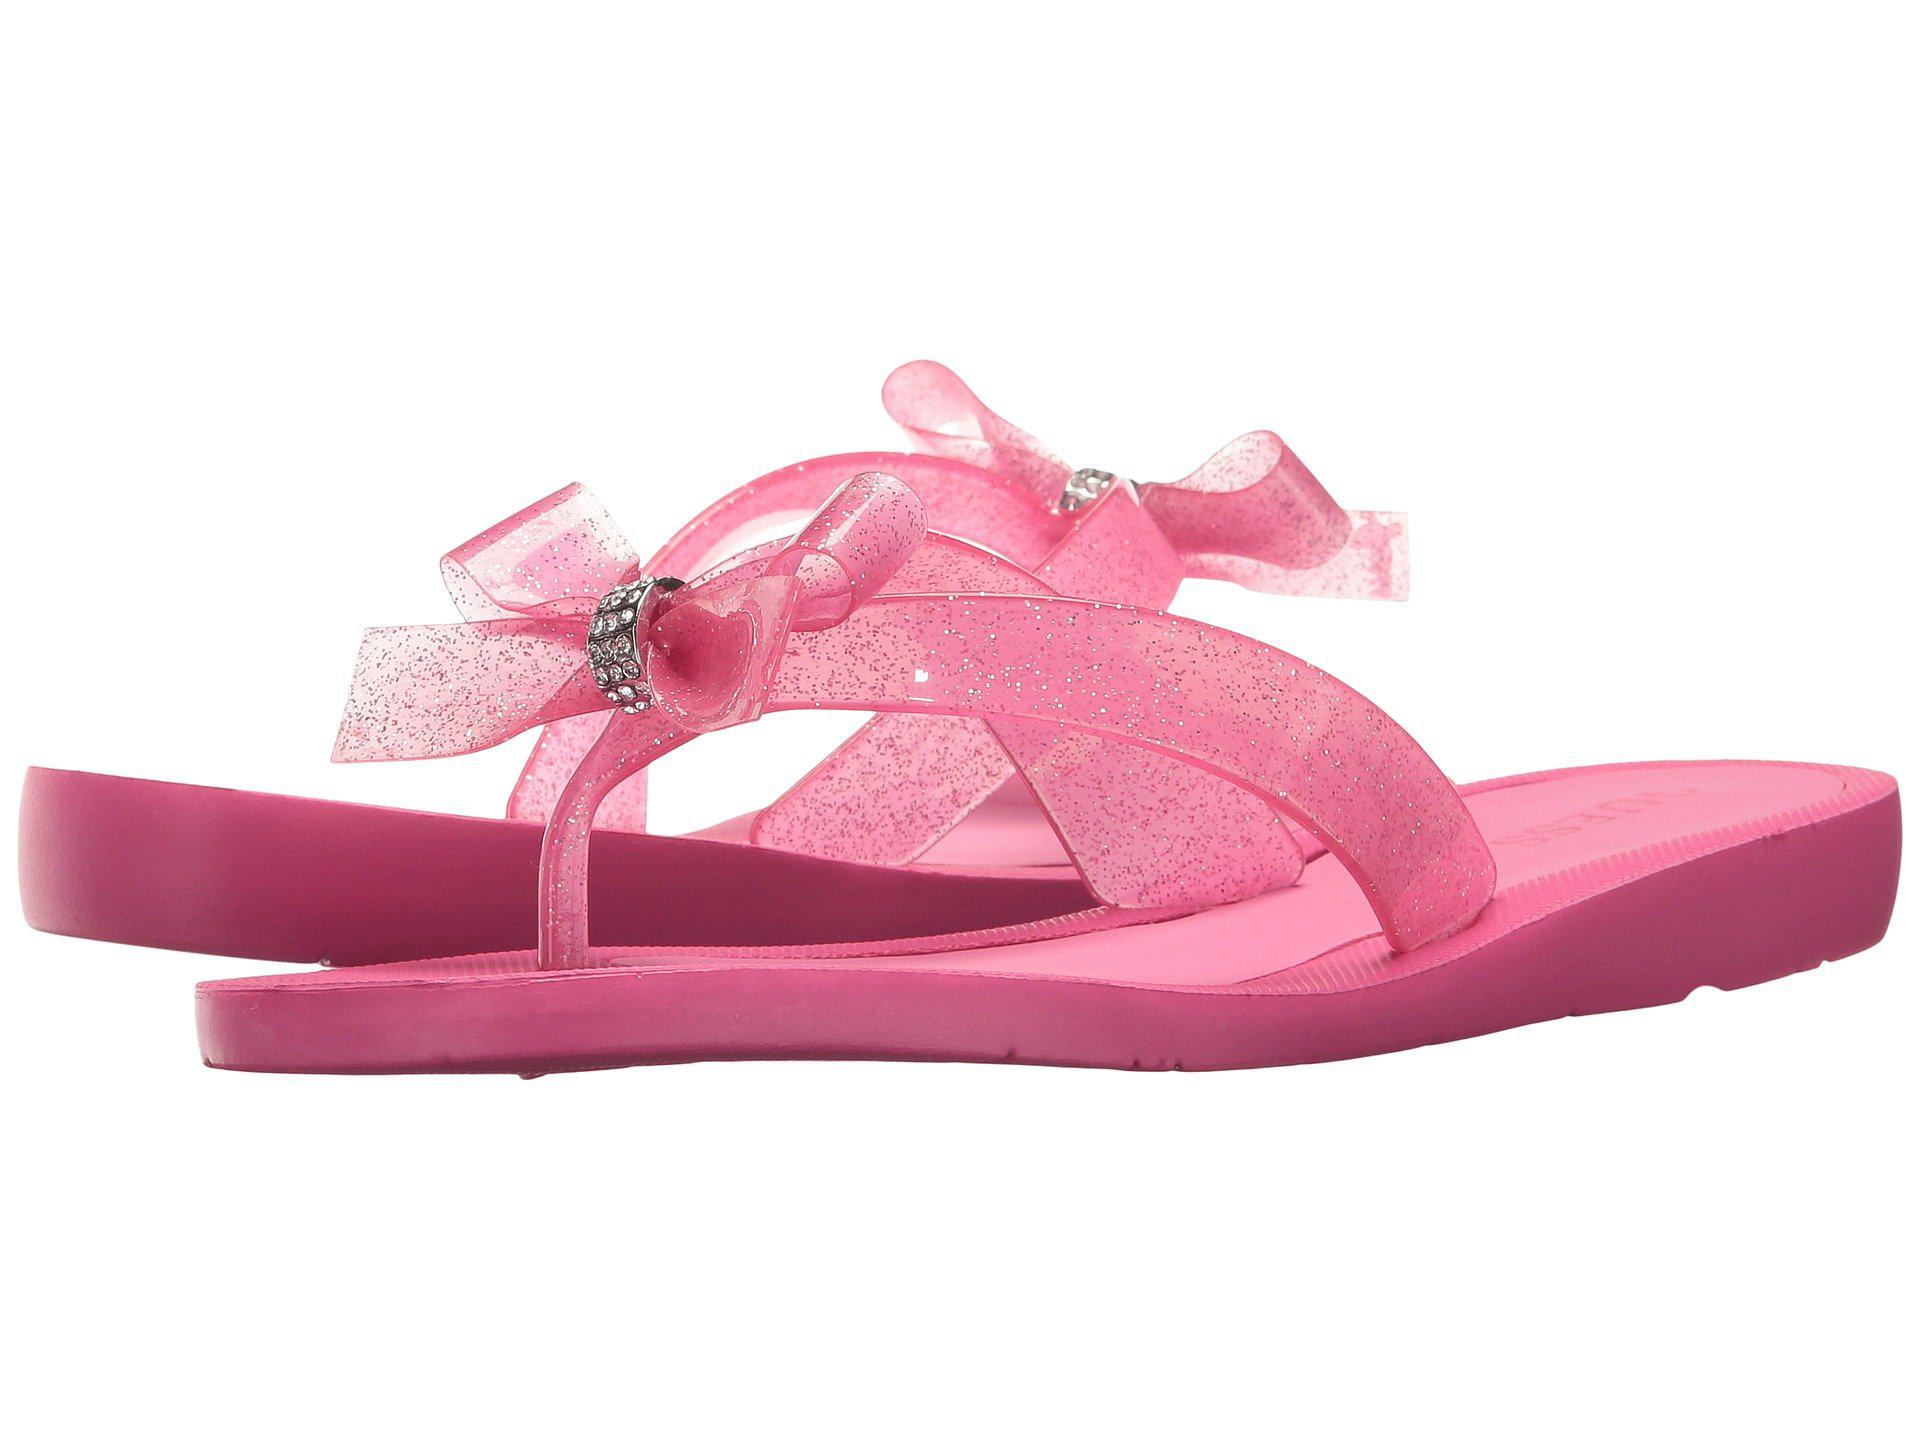 ae0089982026 Lyst - Guess Tutu (pink Synthetic) Women s Sandals in Pink - Save 45%